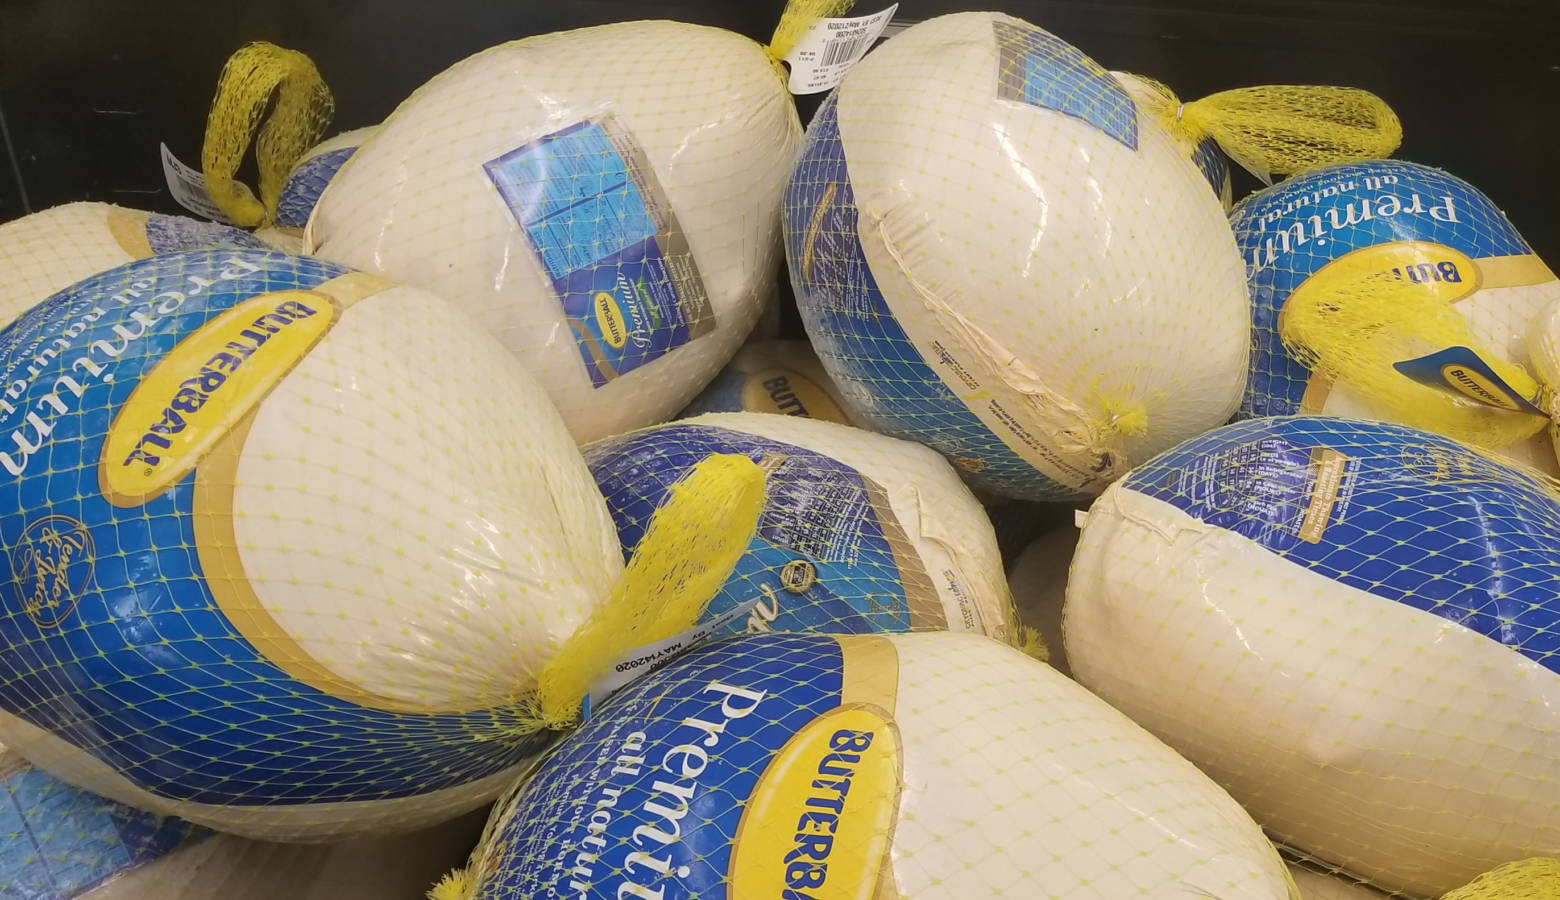 Turkeys for sale at a Meijer in Lafayette, Indiana. (Samantha Horton/IPB News)